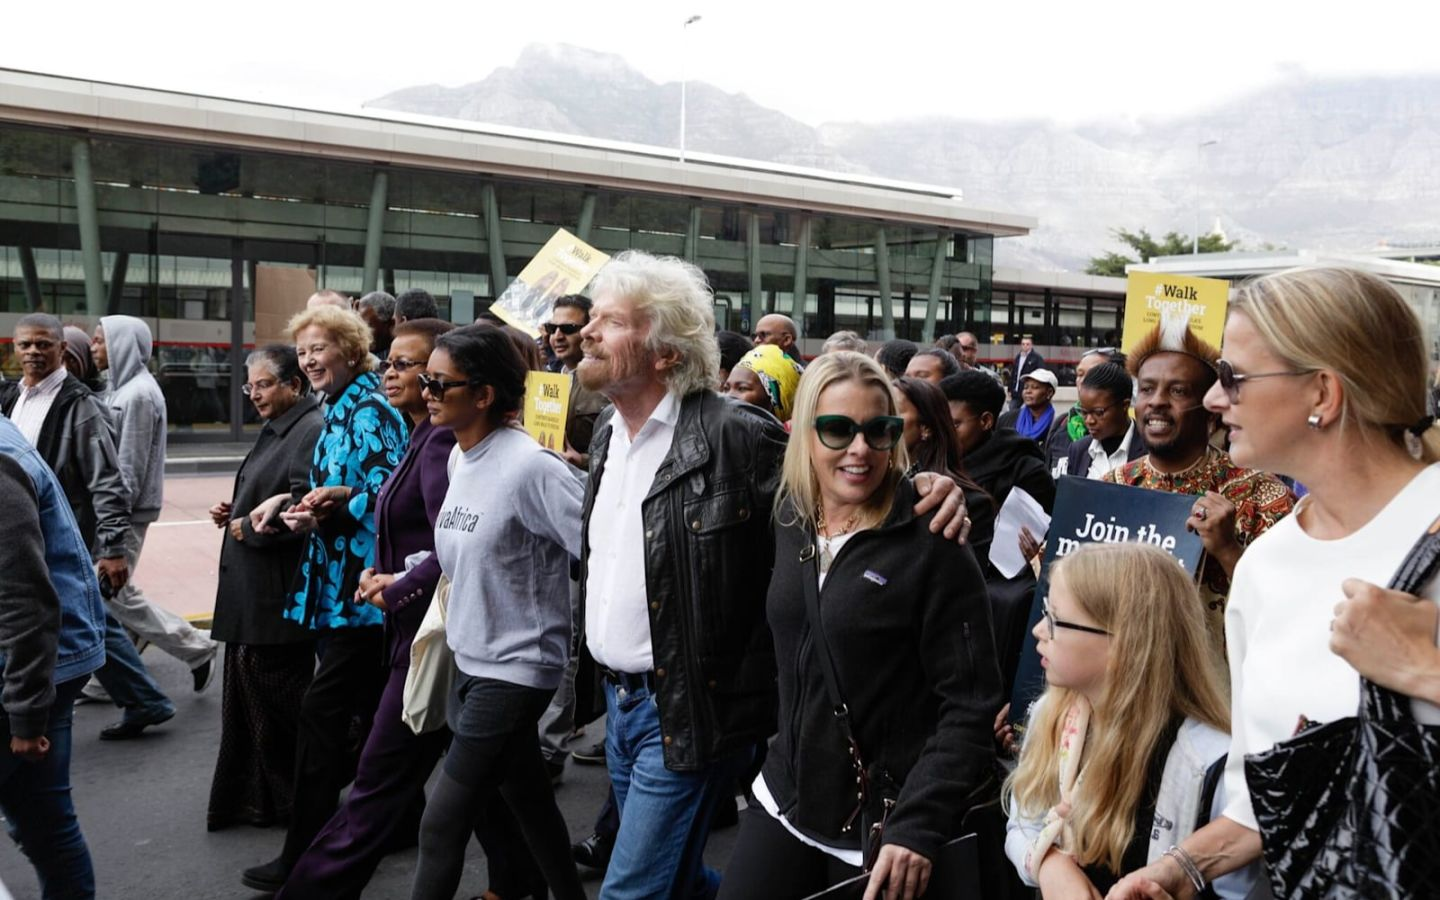 Richard Branson walks with a large group  of people.  He is wearing jeans, a black leather jacket and a white shirt